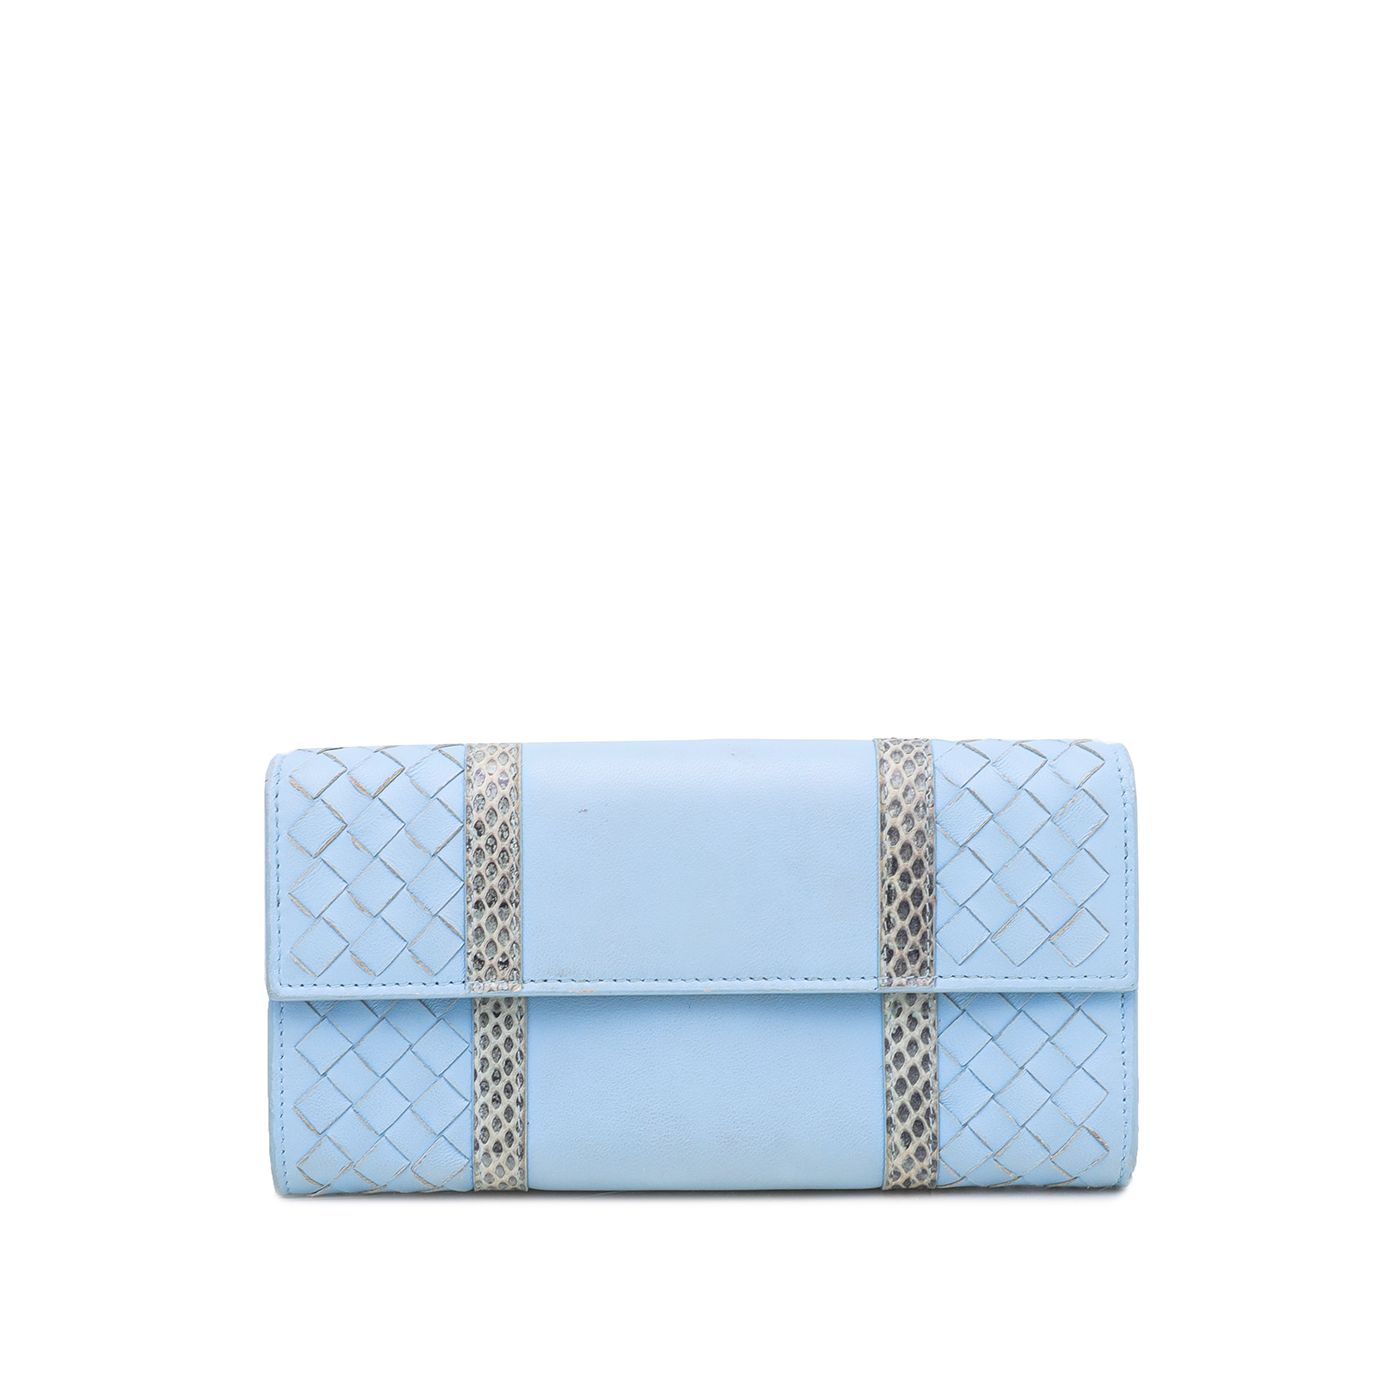 Bottega Veneta Light Blue Snakeskin Continental Flap Wallet